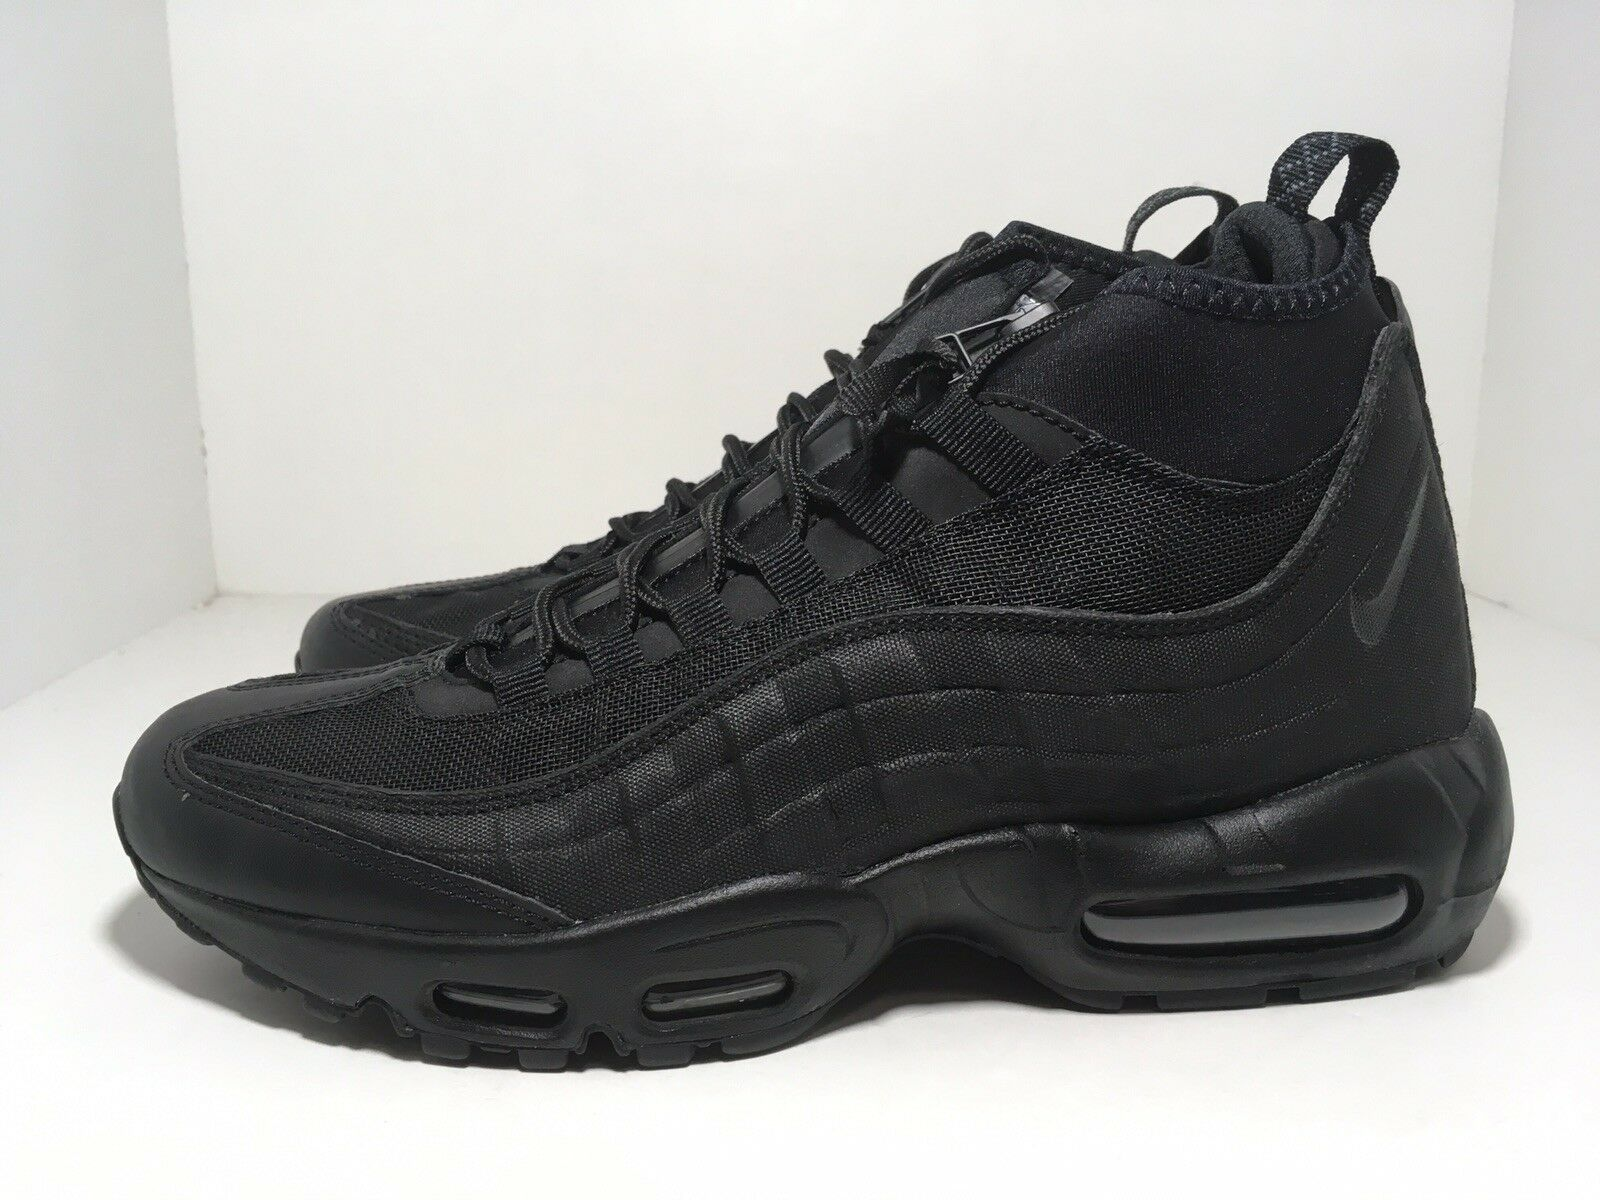 Nike Air Max 95 Sneakerboot Black 806809-002 Men's shoes Size 8